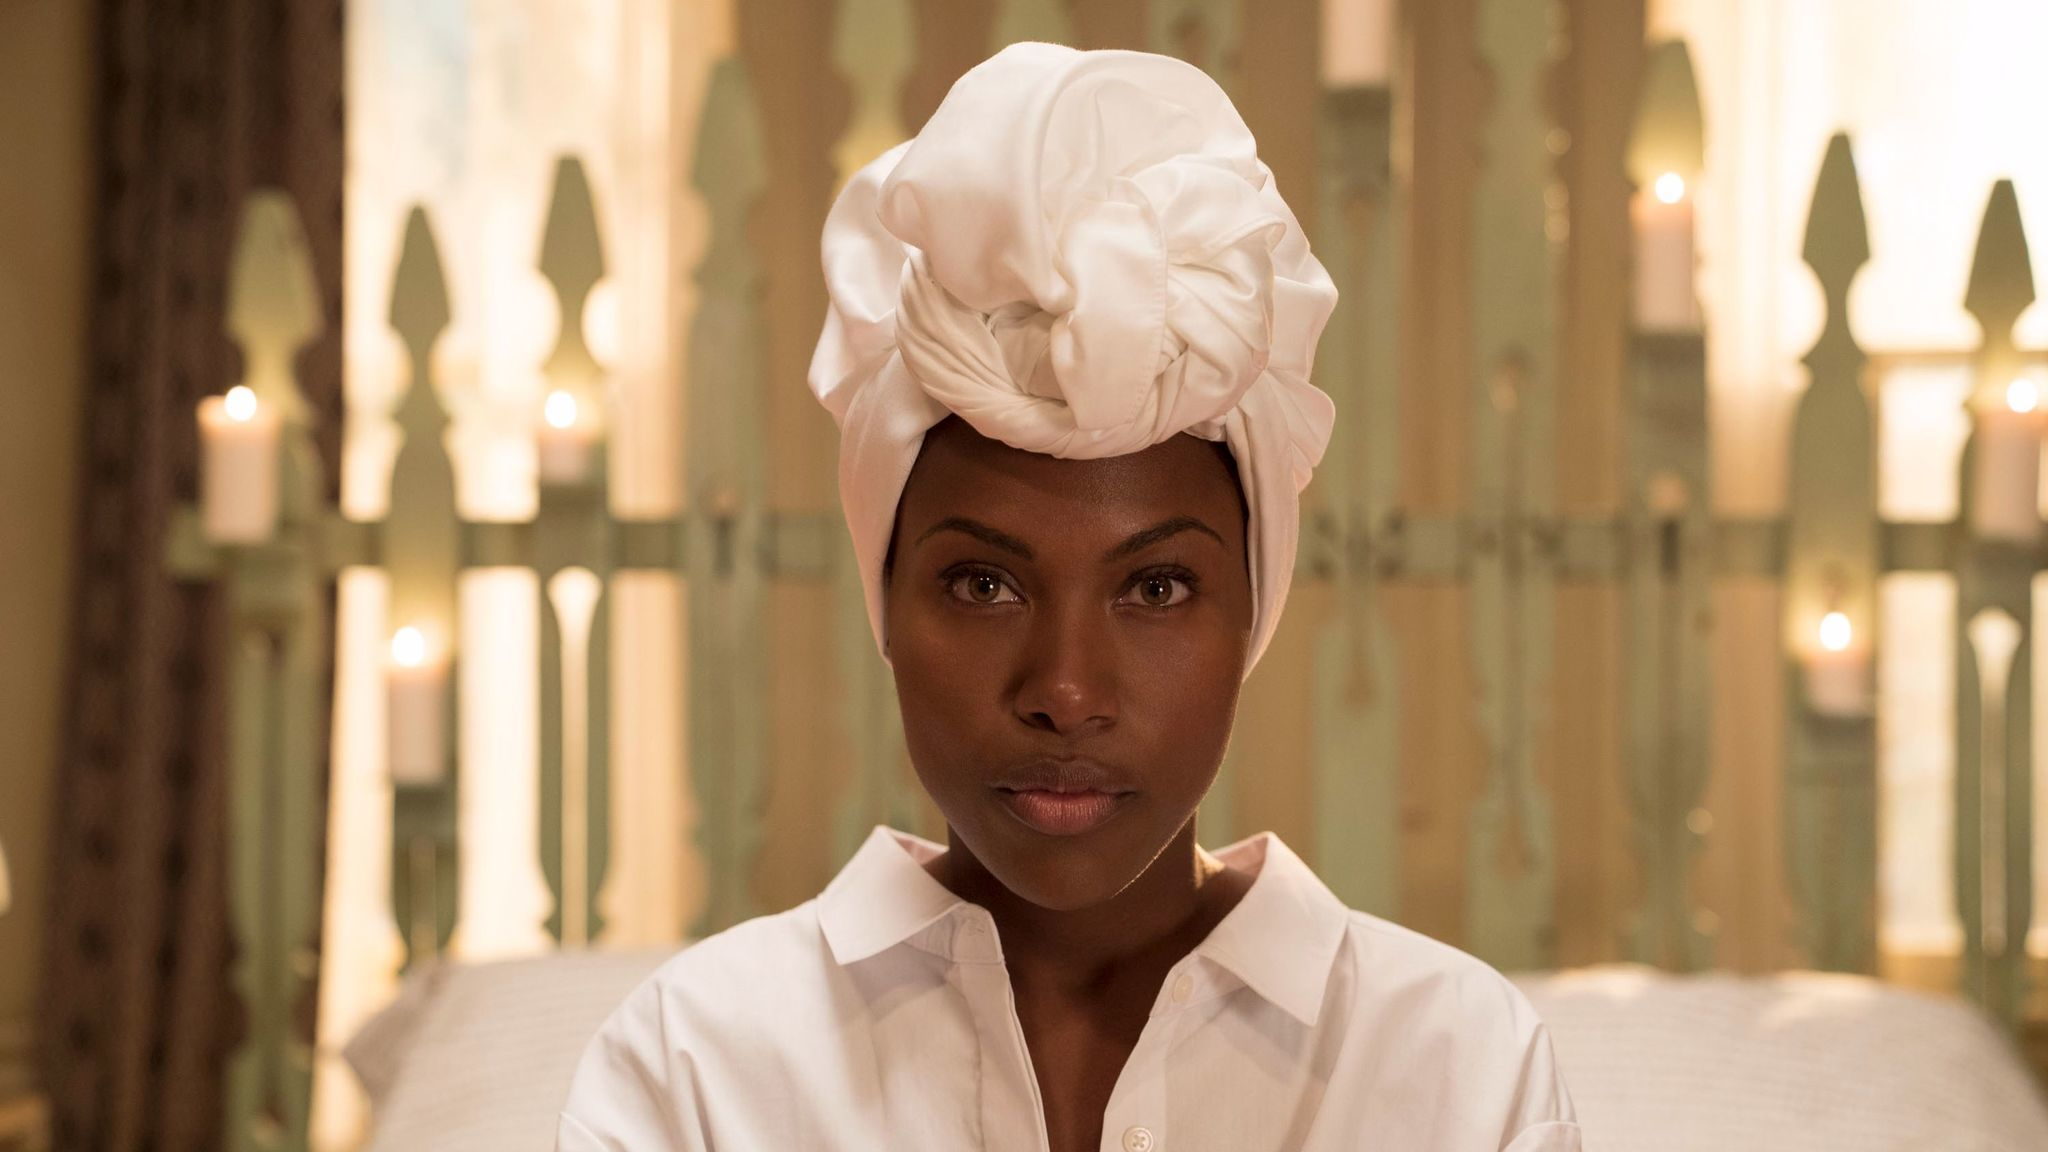 Can Spike Lee's 'She's Gotta Have It' reboot keep up with the strong TV women he helped make possible?